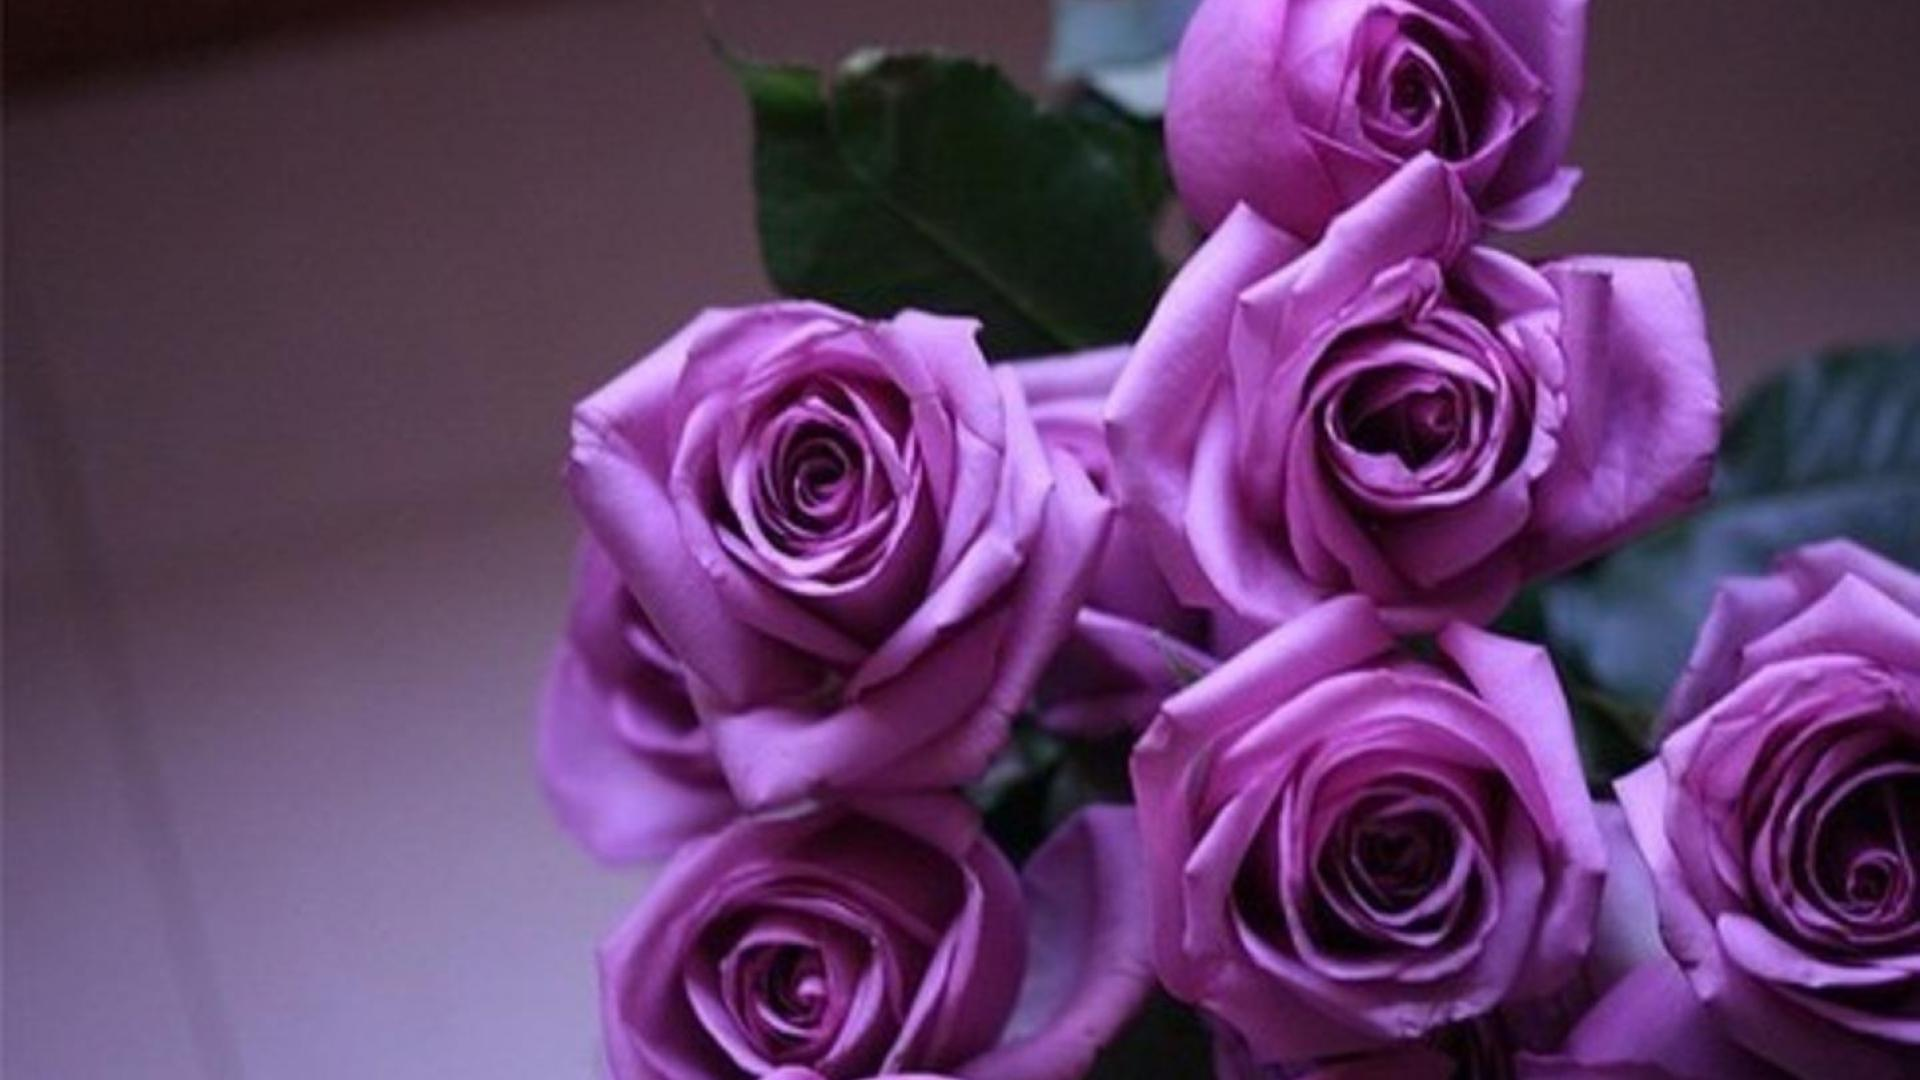 Purple roses wallpaper high definition high quality for Purple rose pictures